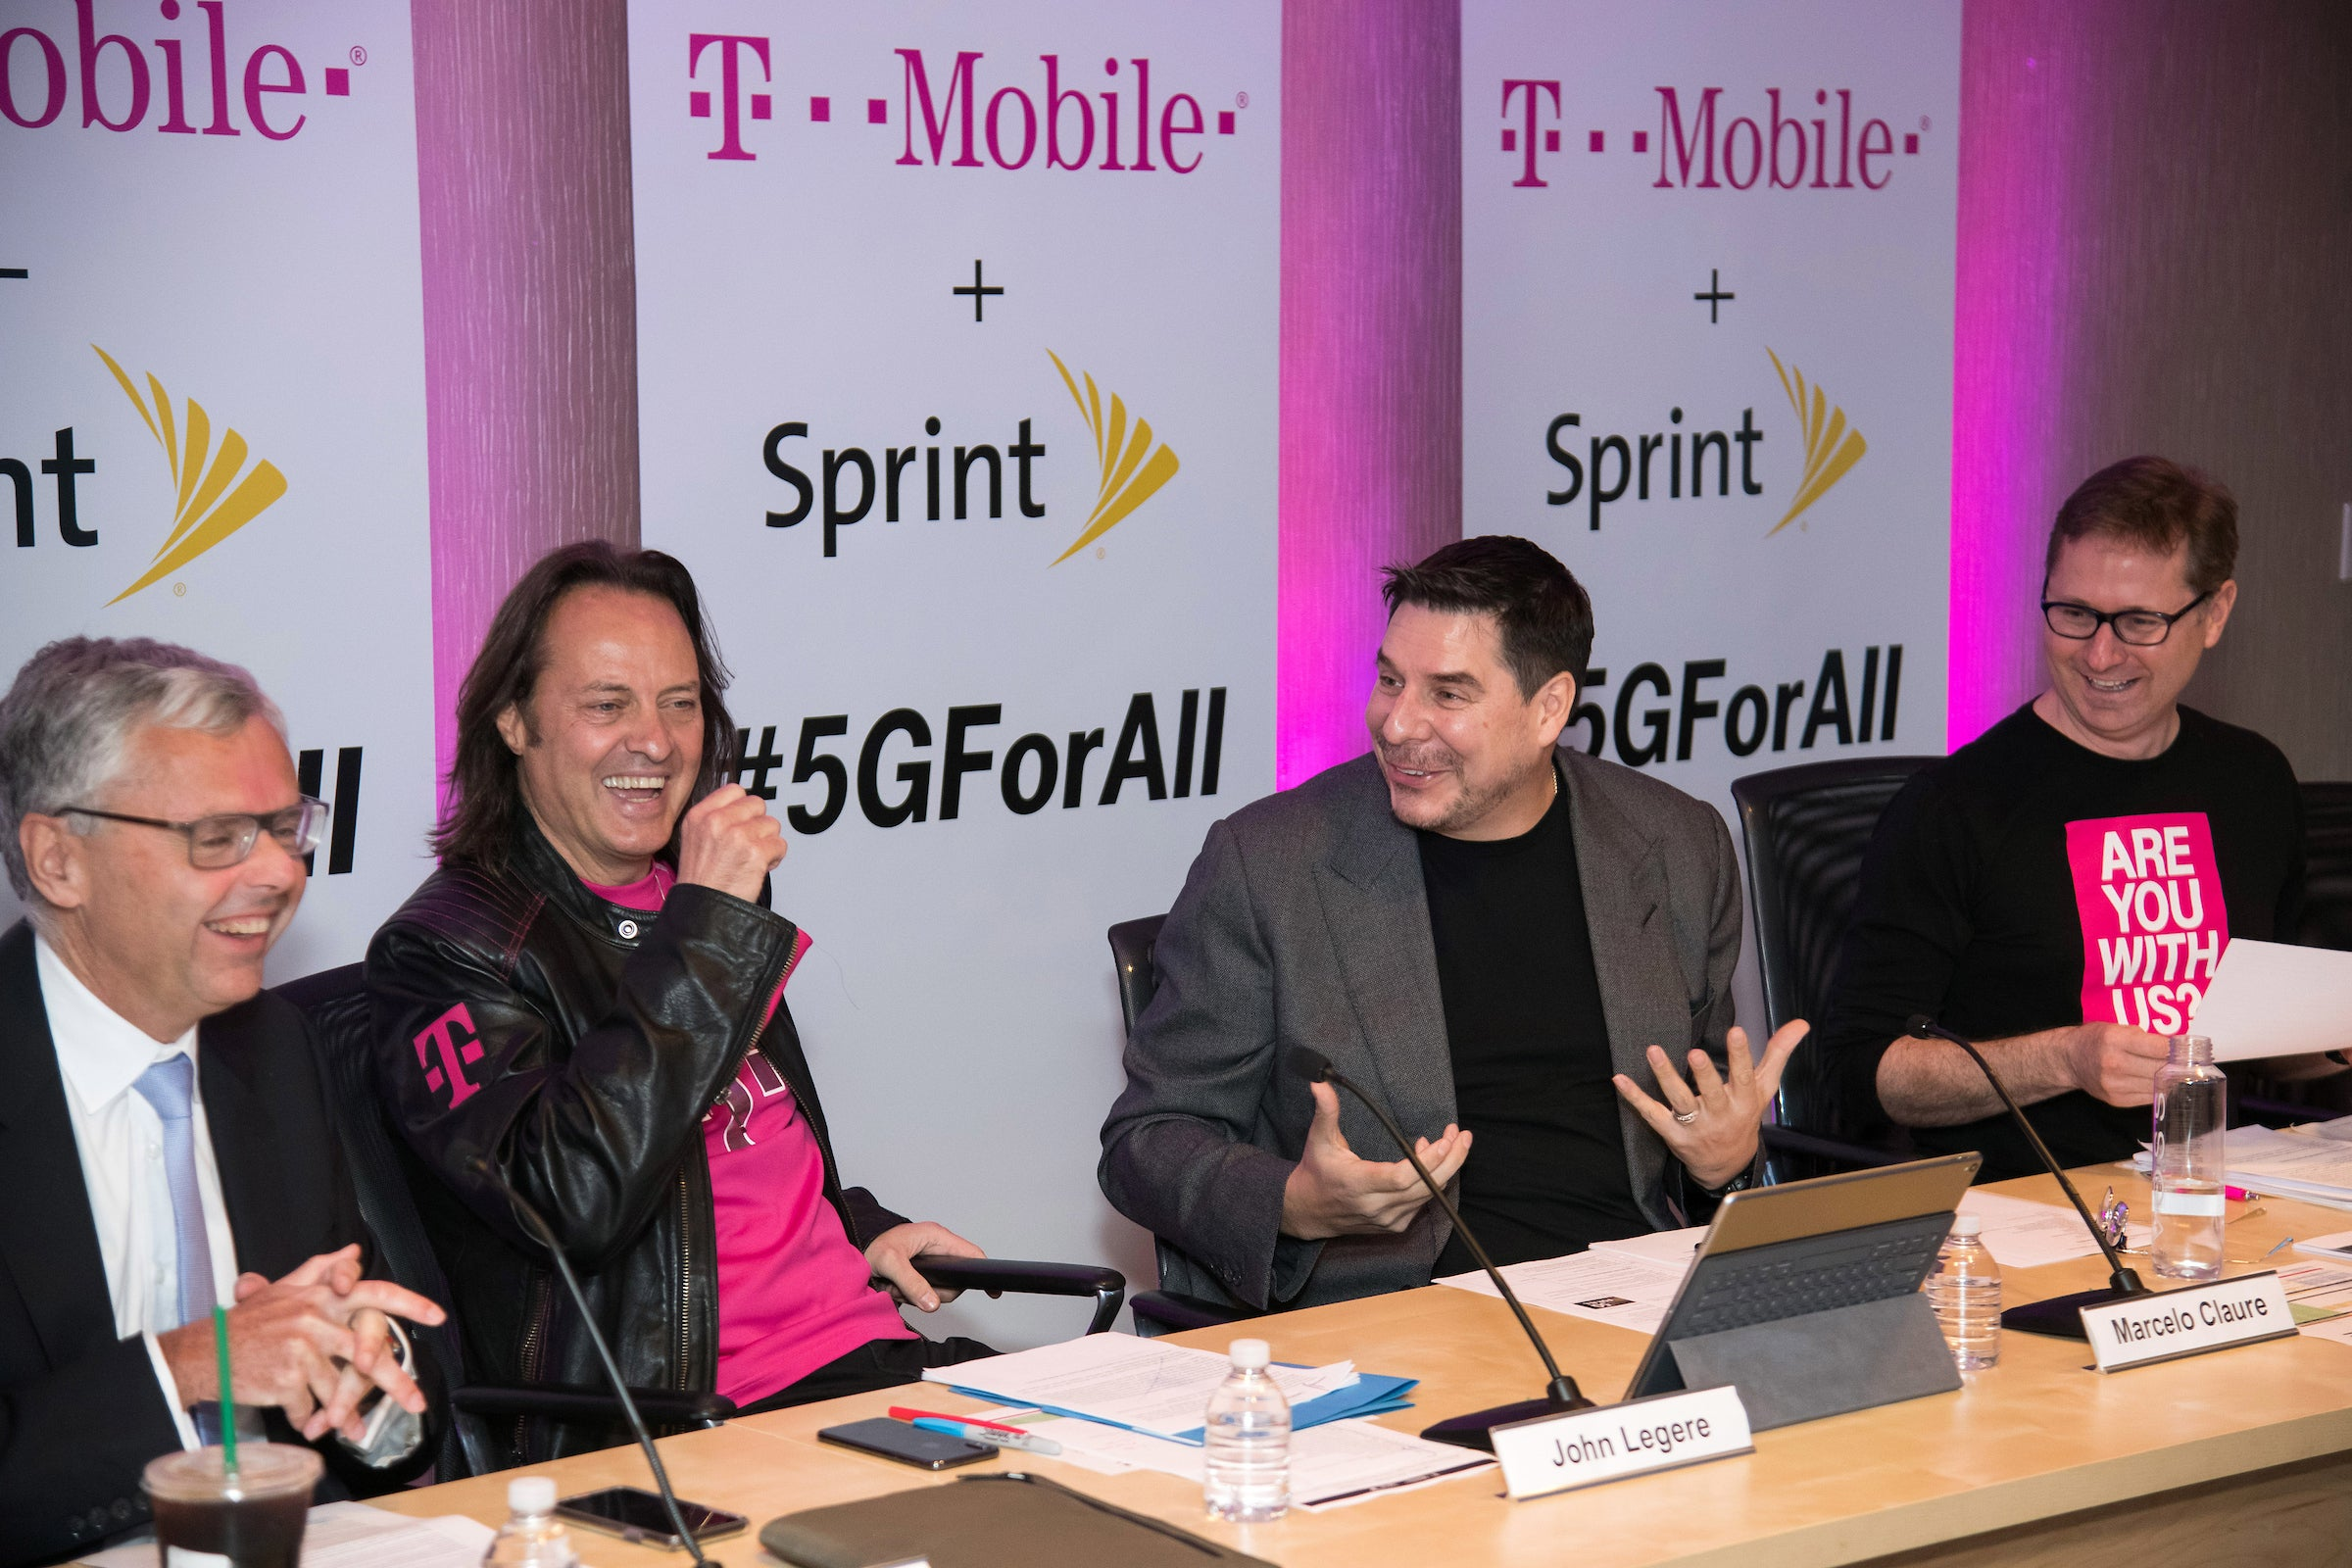 Sprint and T-Mobile executives hosting a conference call to discuss the deal